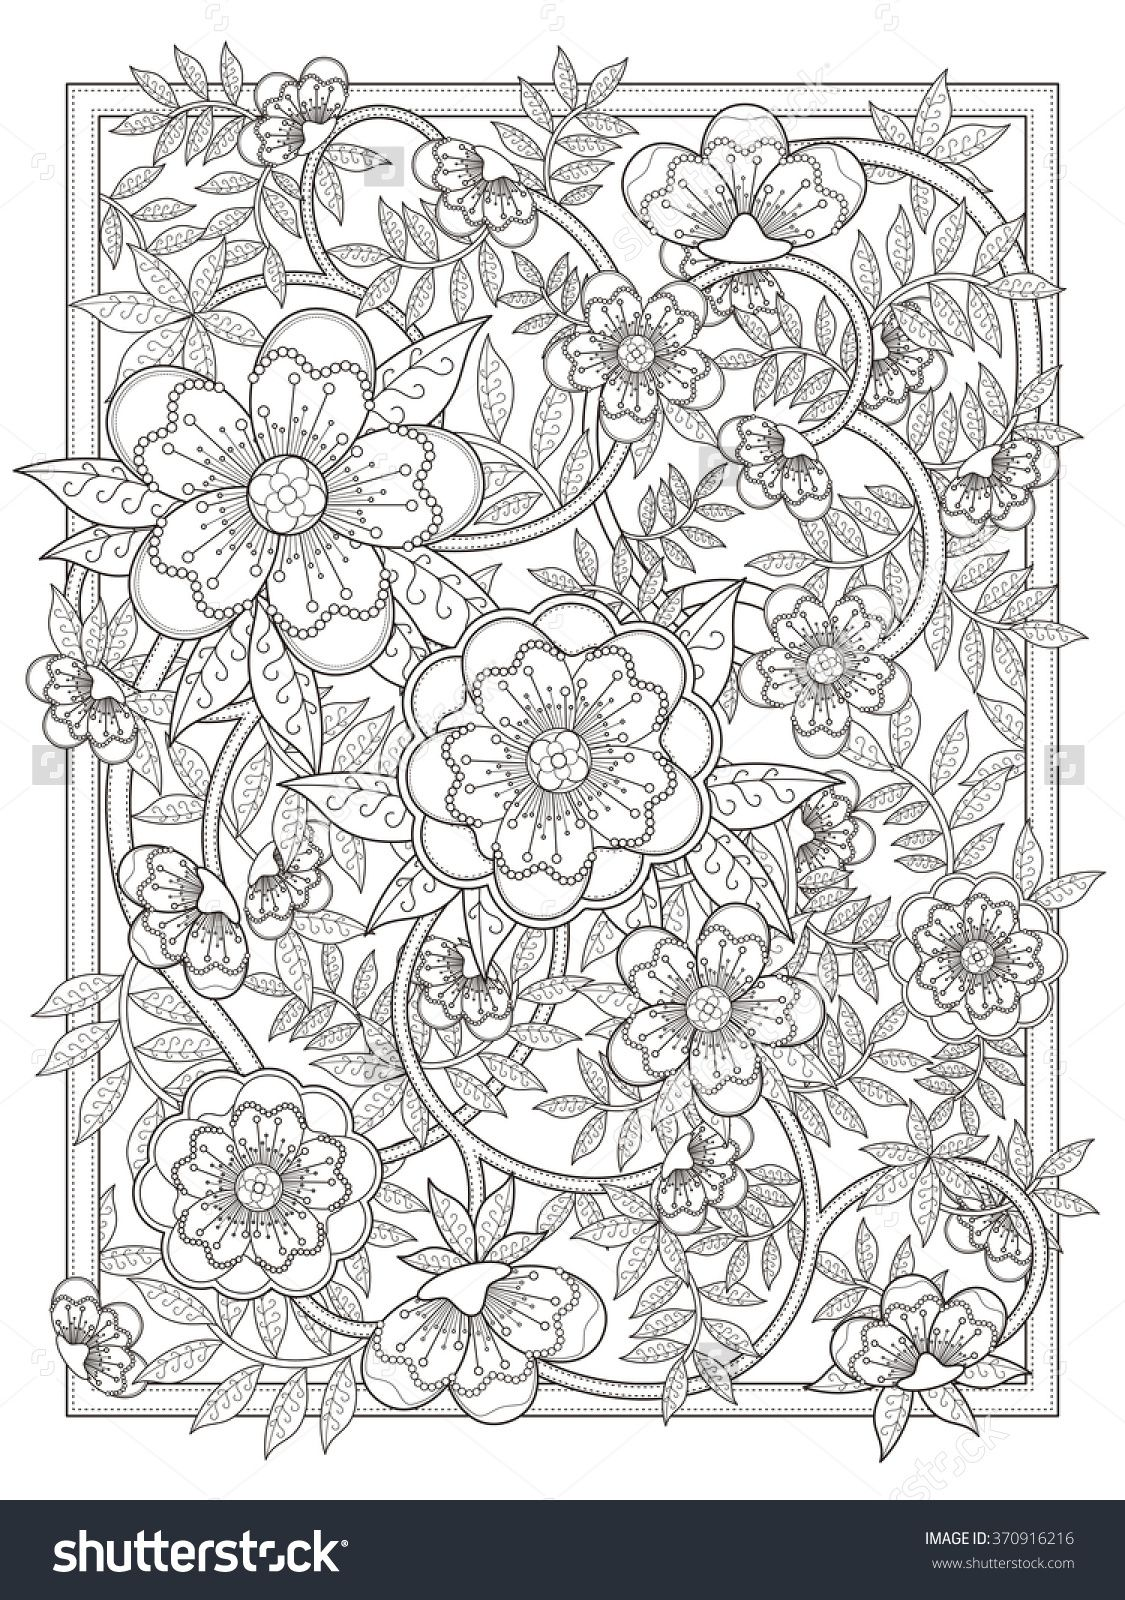 Retro And Elegant Floral Coloring Page In Exquisite Line